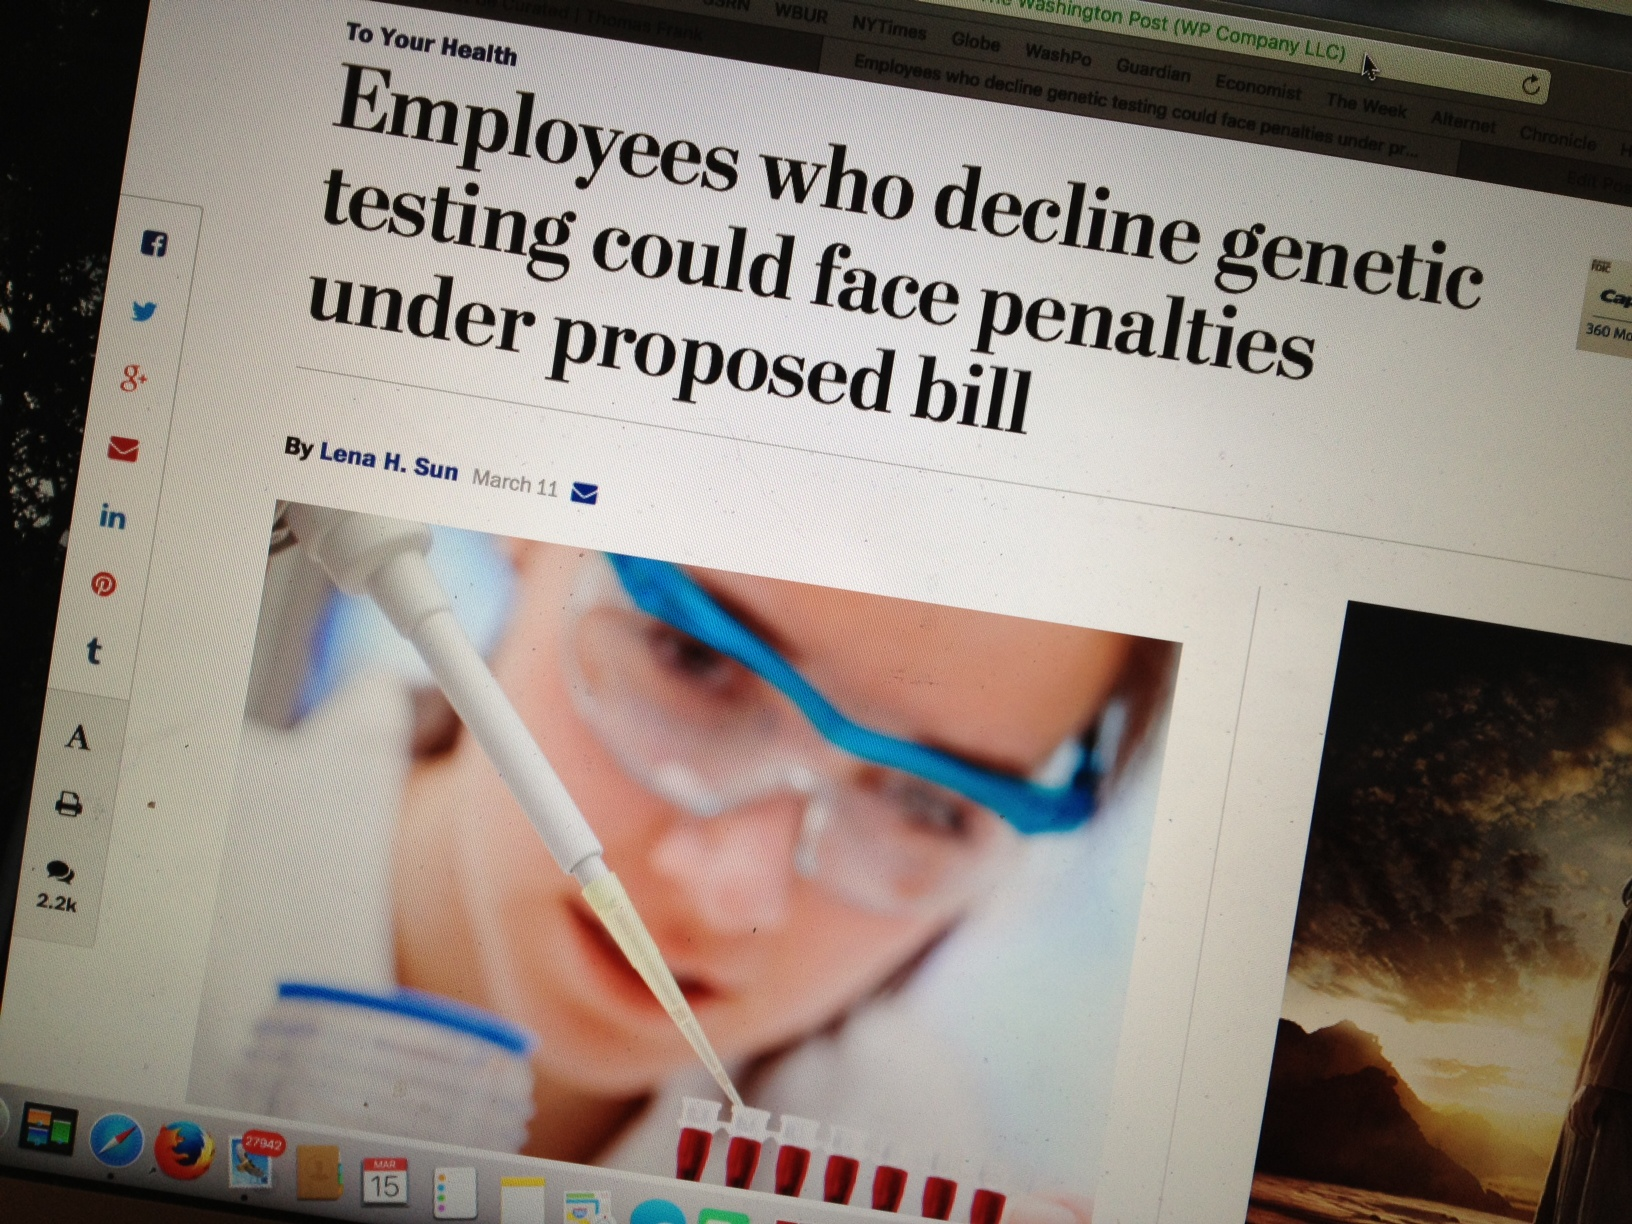 genetic testing in the workplace A blood pressure test house republicans are proposing legislation aimed at making it easier for companies to gather health and genetic data from workers and their families, including.